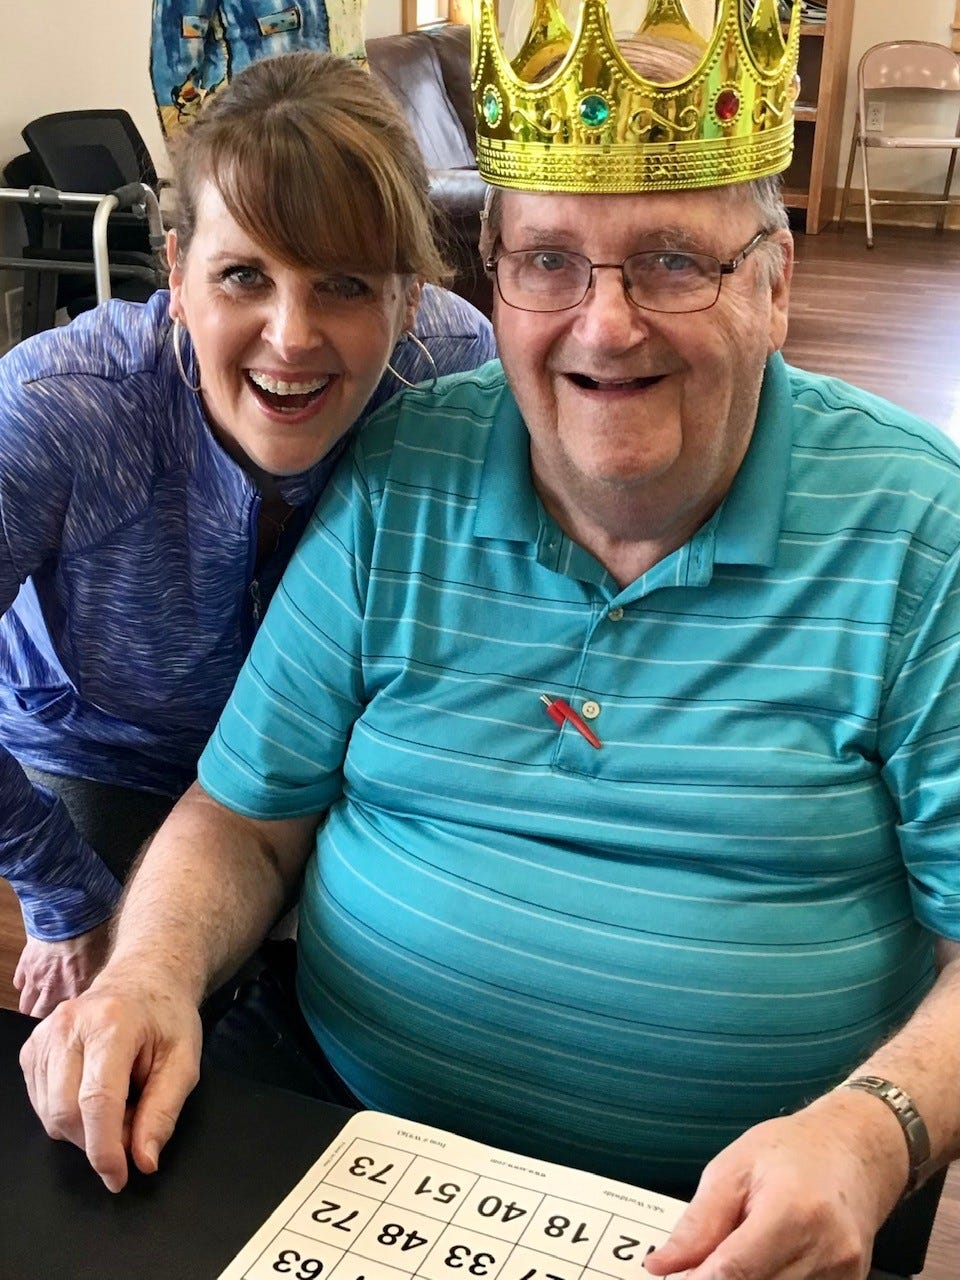 Jennifer Luiken with her father, Lou Luiken, after a Bingo sweep at his care center.